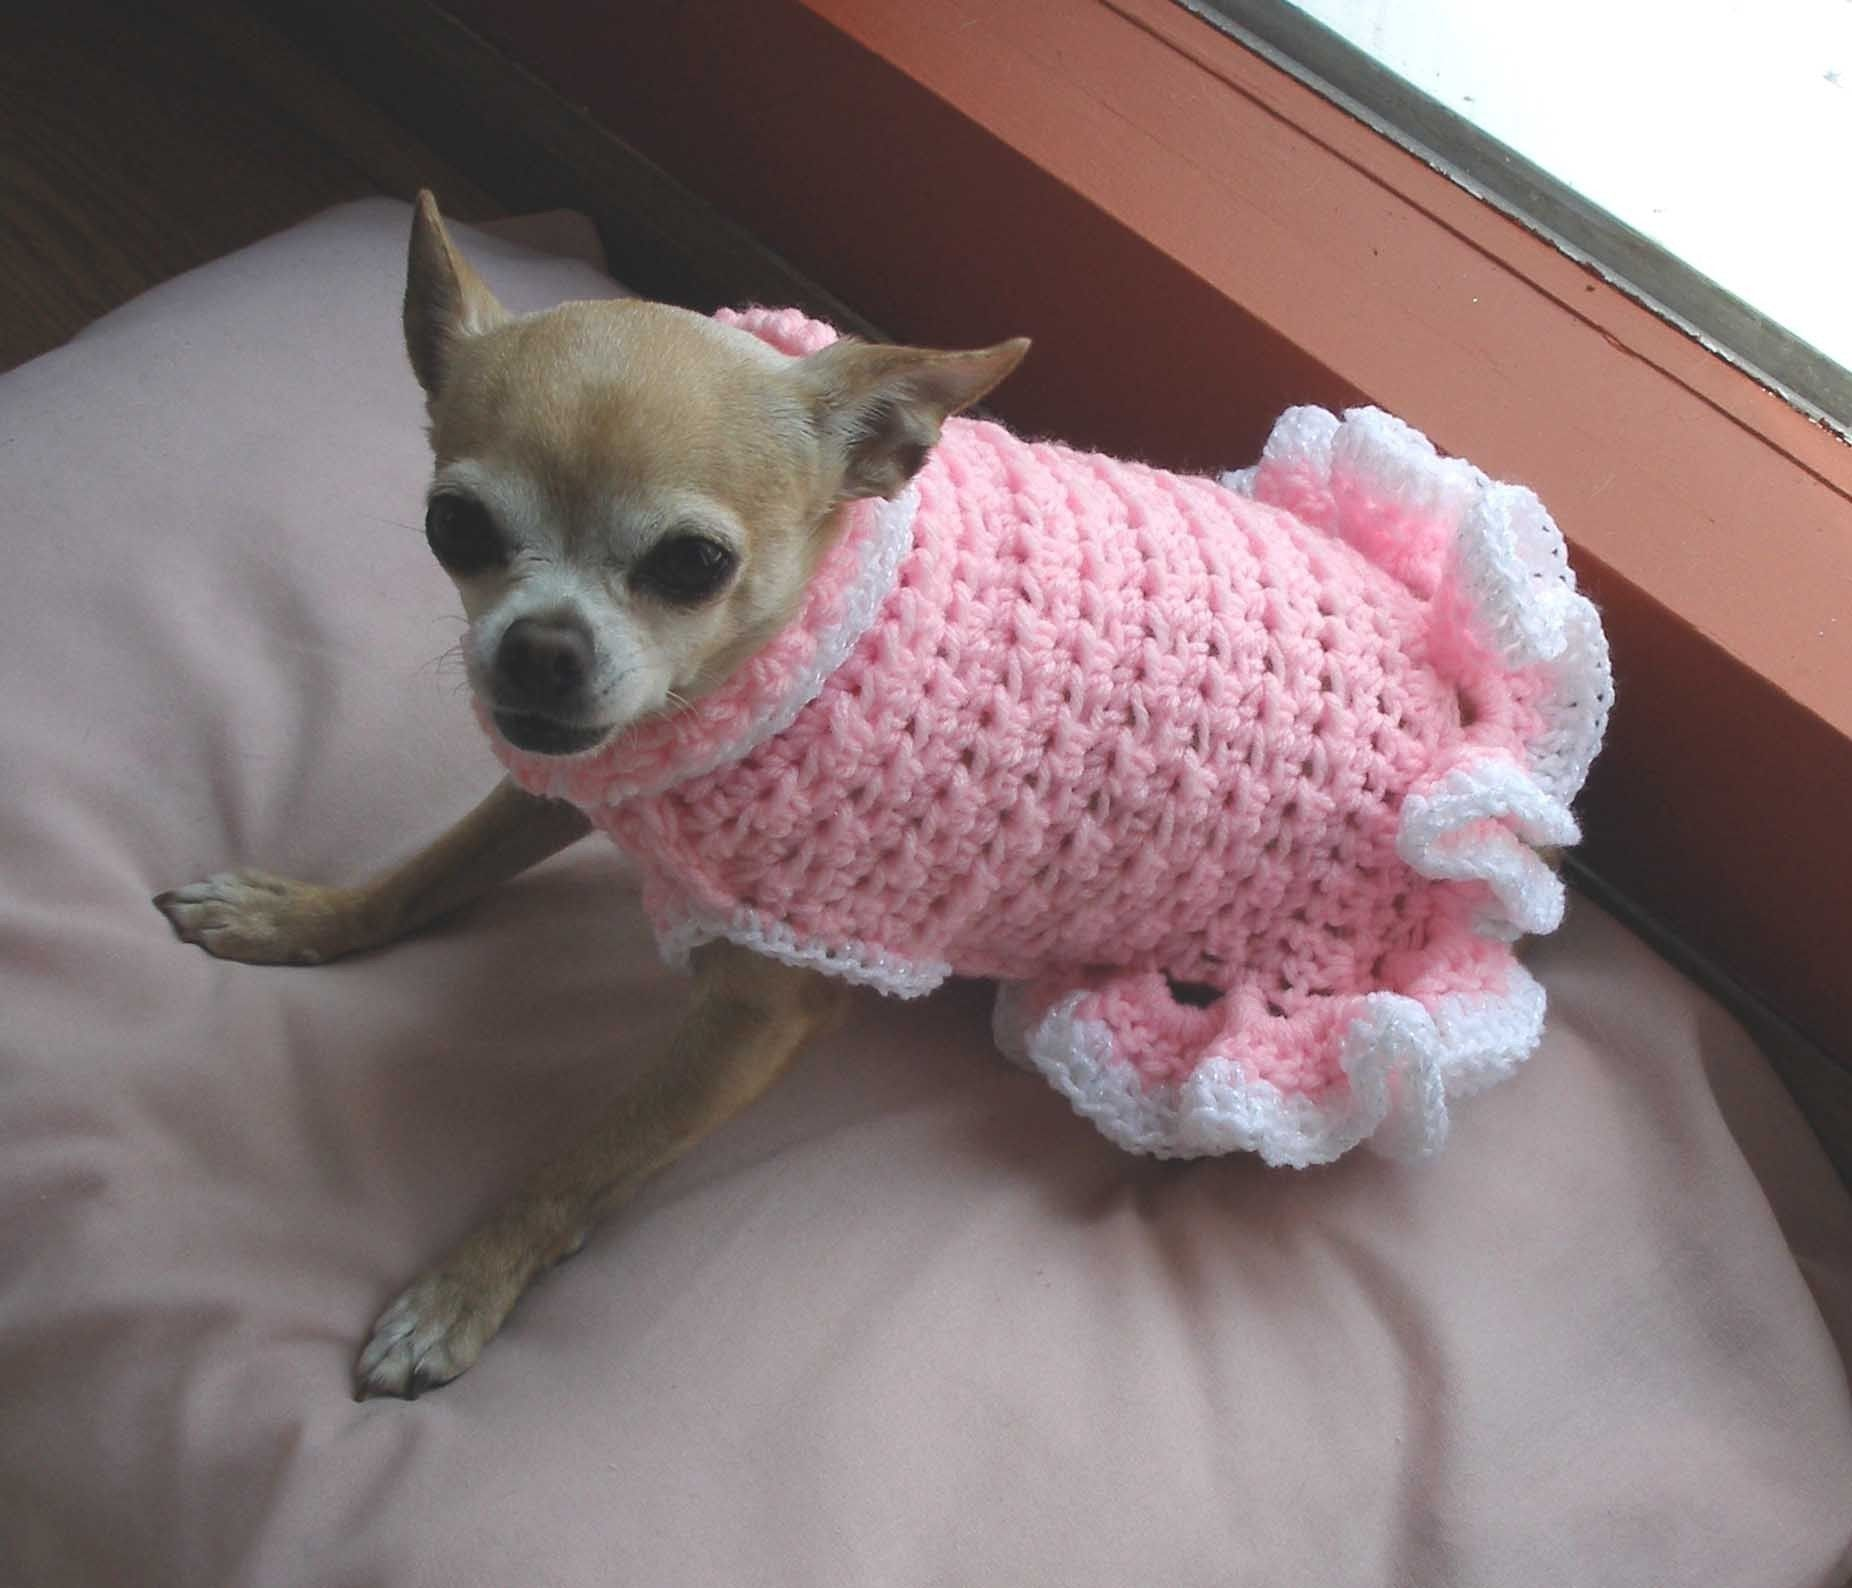 Easy Dog Sweater Free Crochet Pattern Free Crochet Dog Sweater Crochet Pattern Crochet Dog Clothes Dog Sweater Pattern